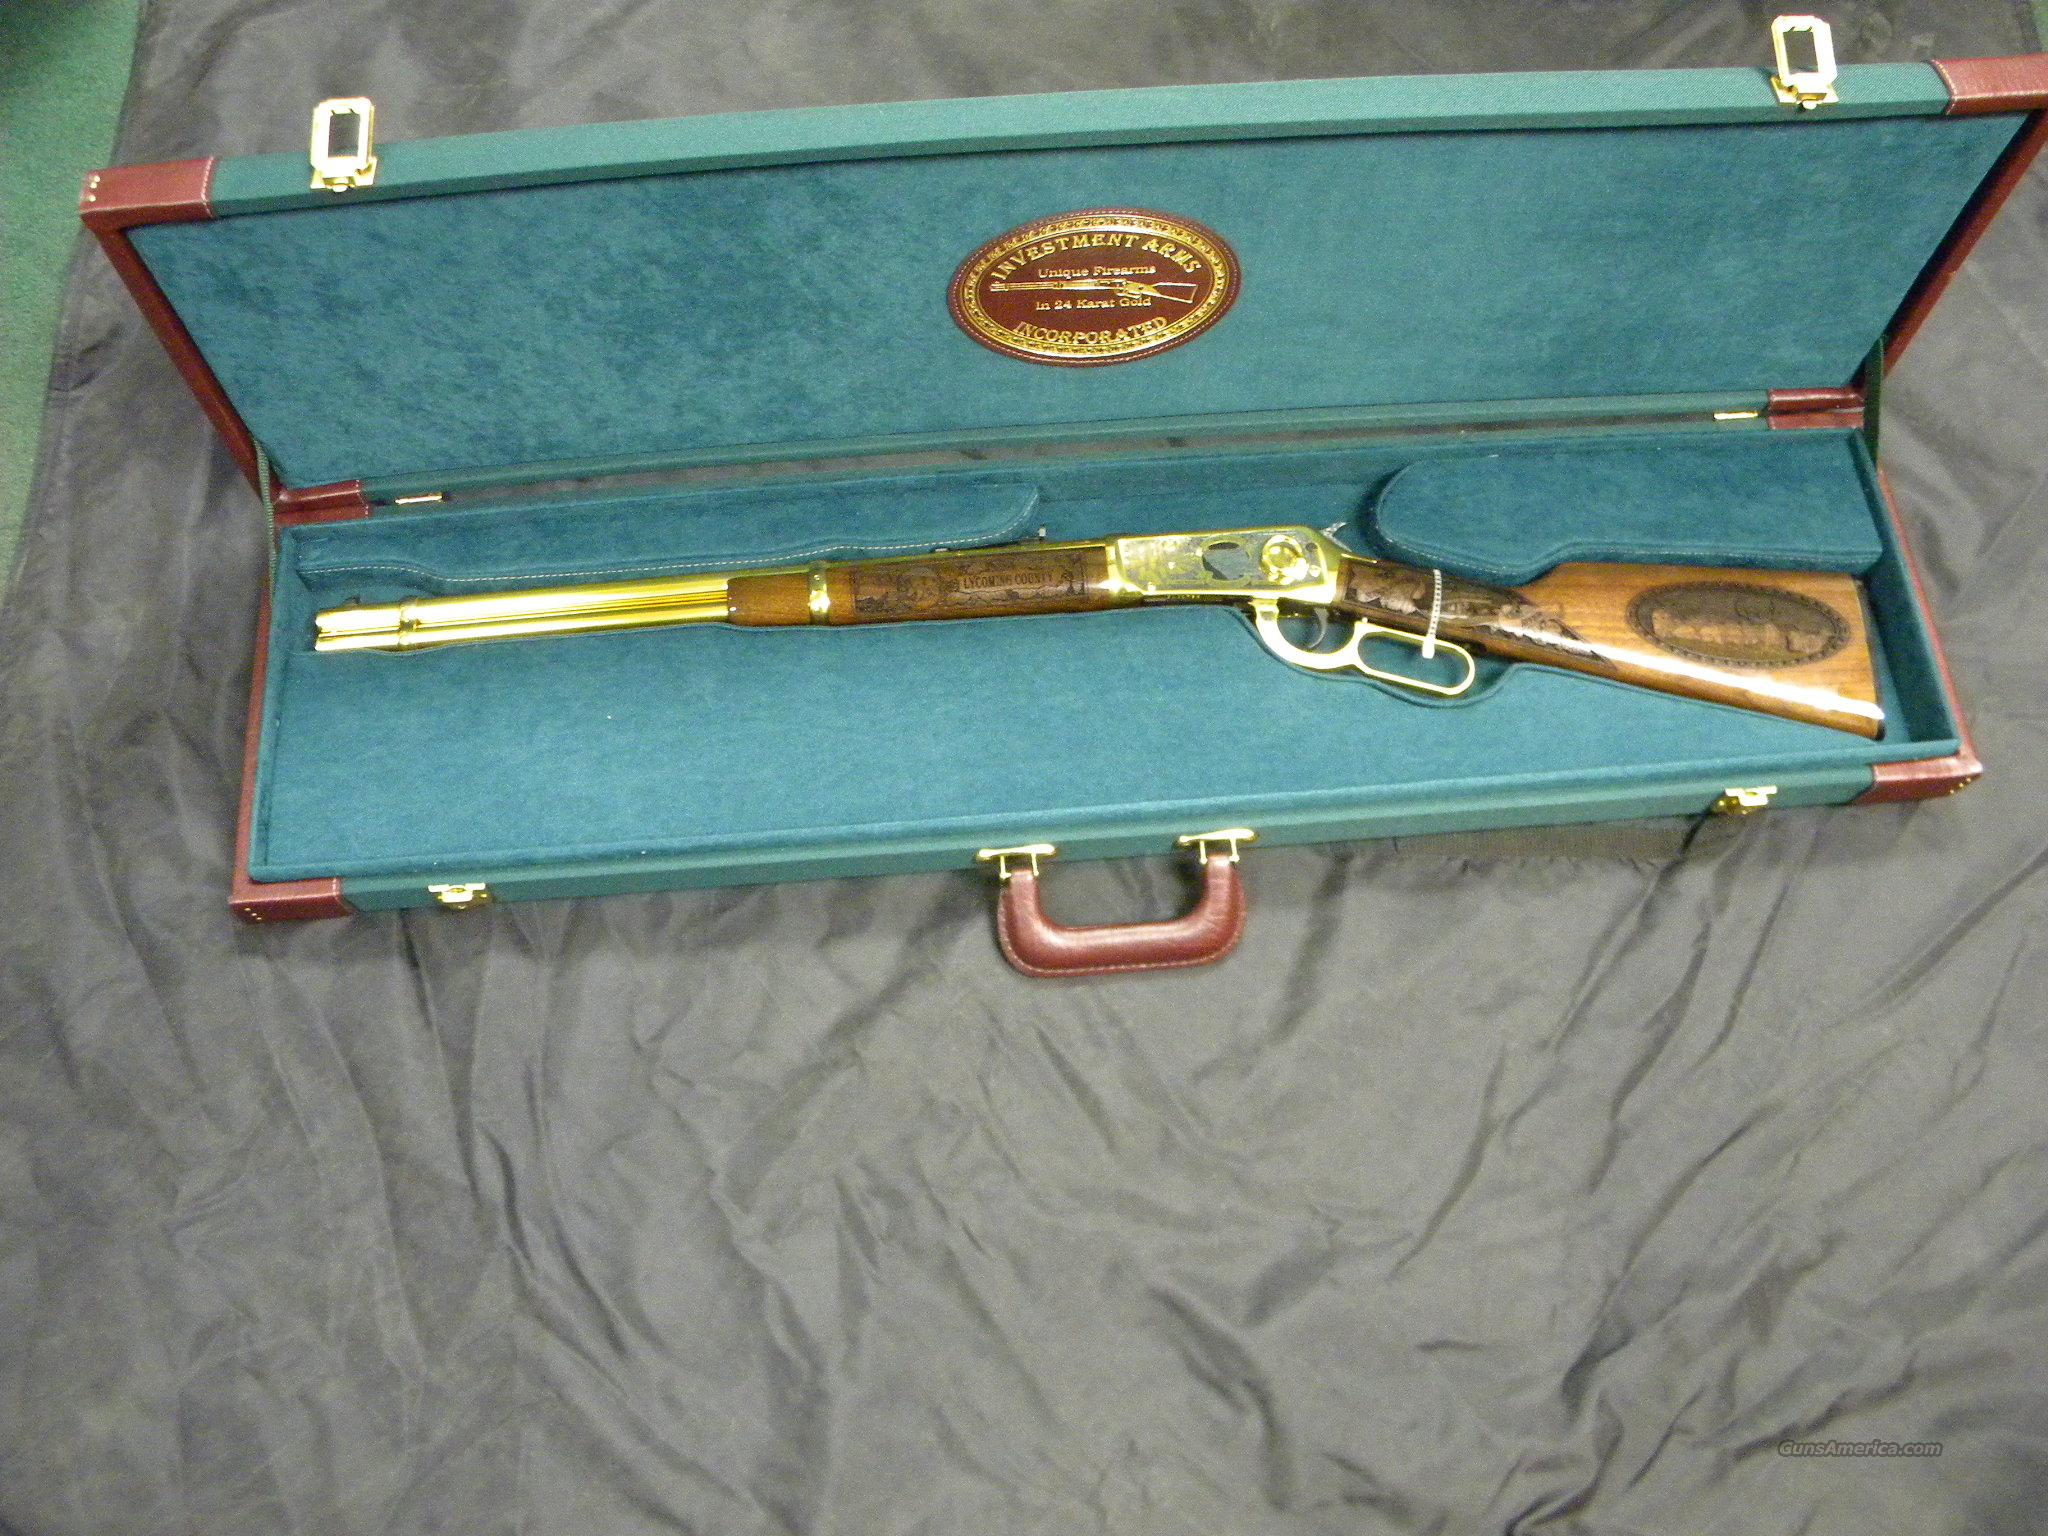 WINCHESTER MODEL 94 PENNSYLVANIA LYCOMING COUNTY 24 KARAT GOLD COMMEMORATIVE RIFLE #2 OF 10 MANUFACTURED  Guns > Rifles > Winchester Rifle Commemoratives